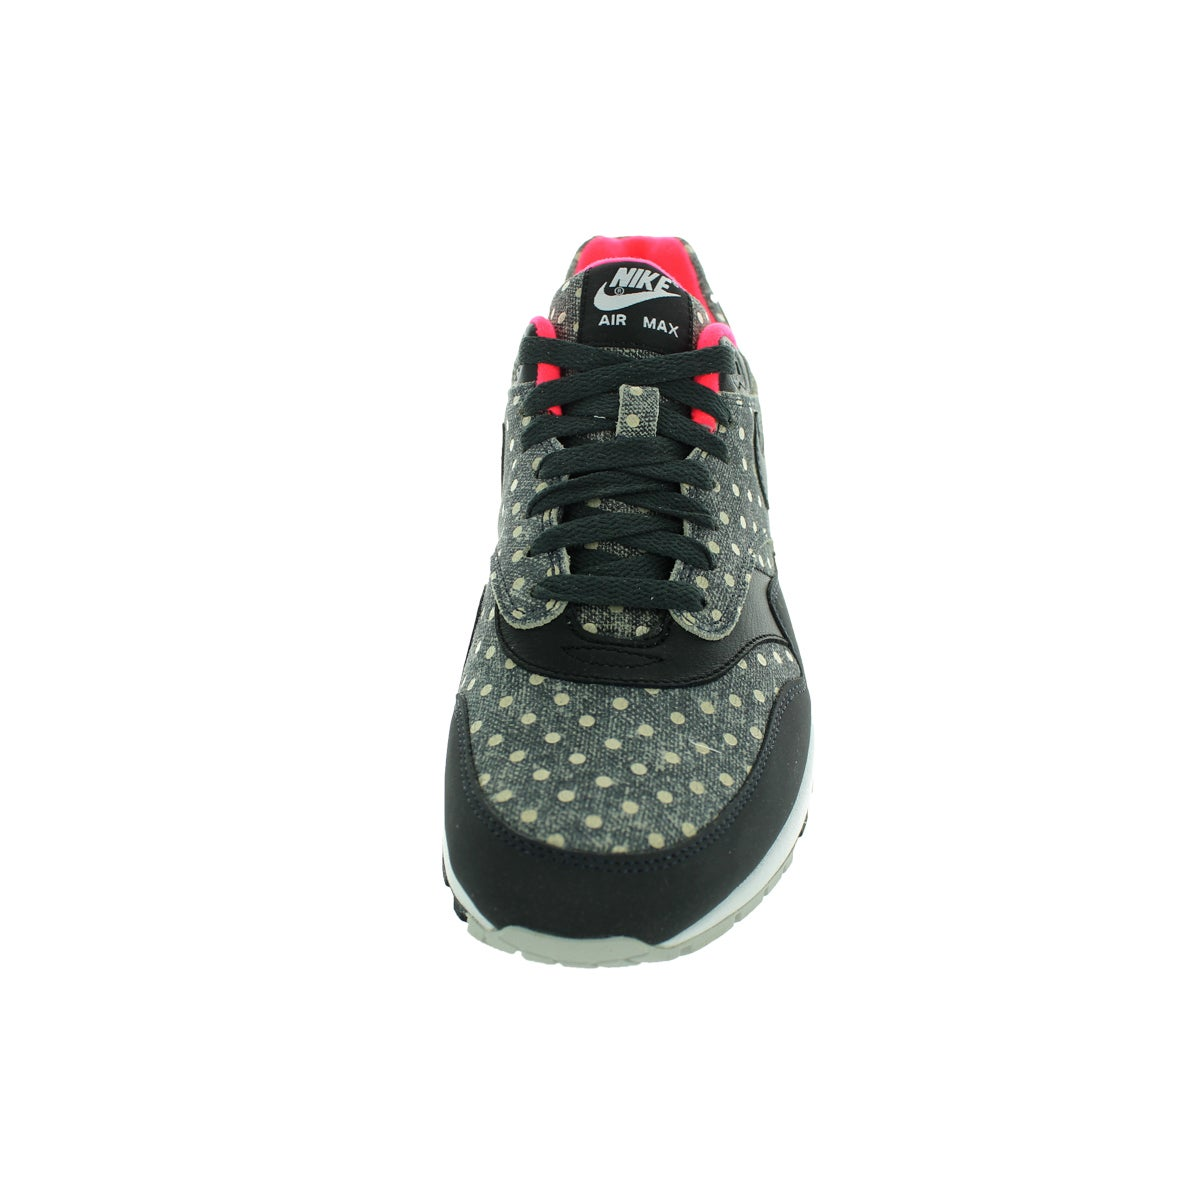 brand new 08930 1ed22 Nike-Mens-Air-Max-1-Ltr-Premium-Anthracite-Black -Granite-Running-Shoe-96fa1a24-c90a-472d-bc44-1b9de2f4e285.jpg